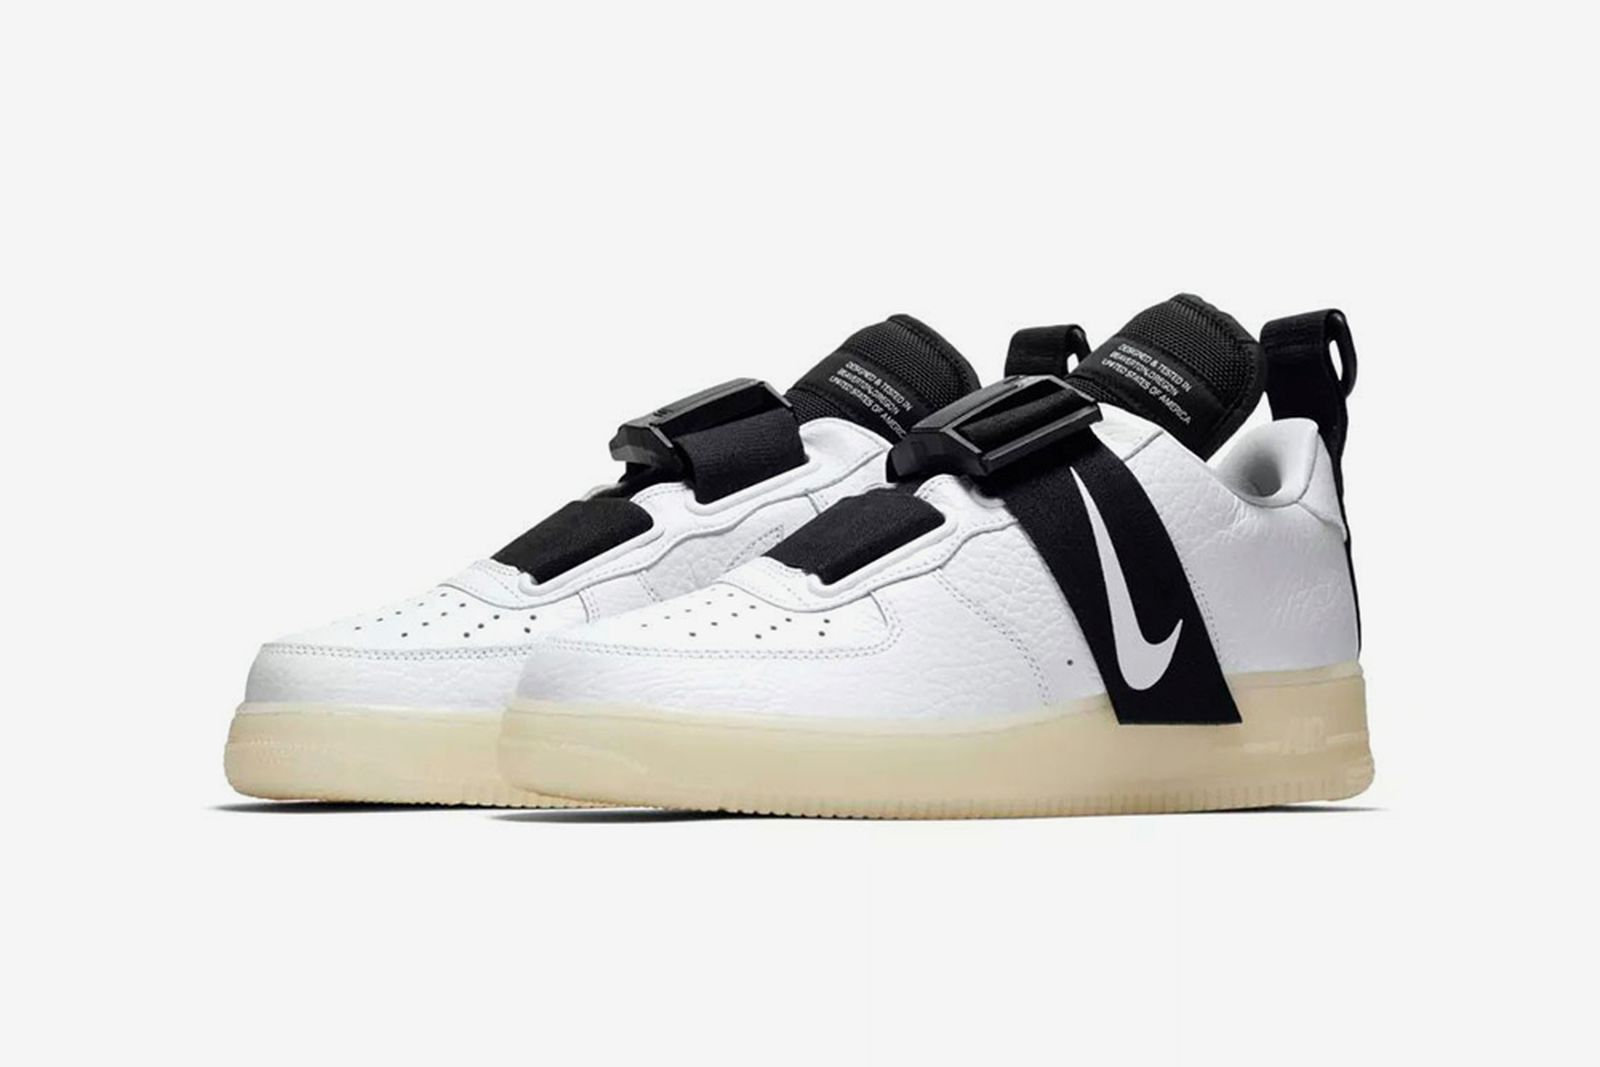 nike air force 1 utility buckle white black release date price